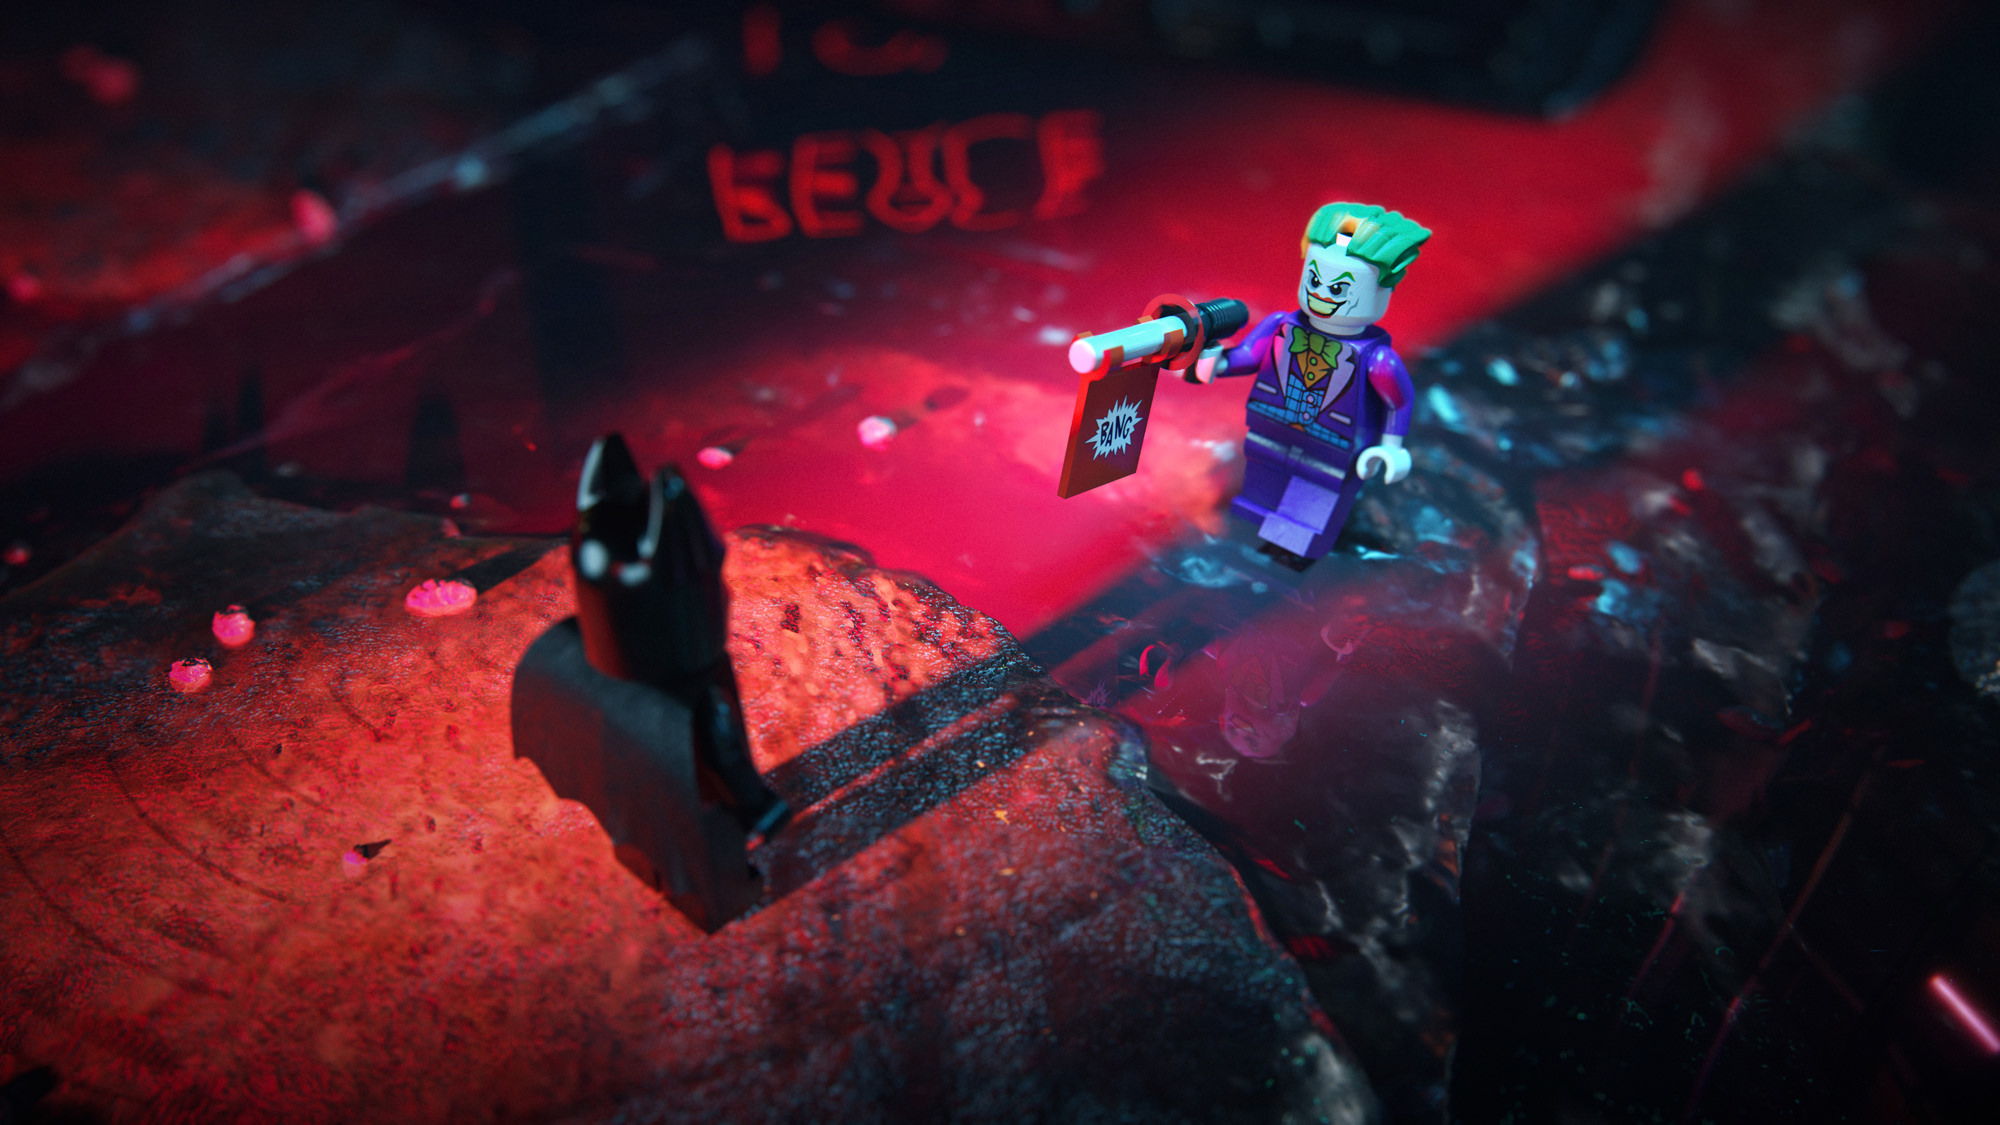 3D LEGO Joker visualization in combat mode with a gun pointed at toy Batman rendering in the night city surroundings